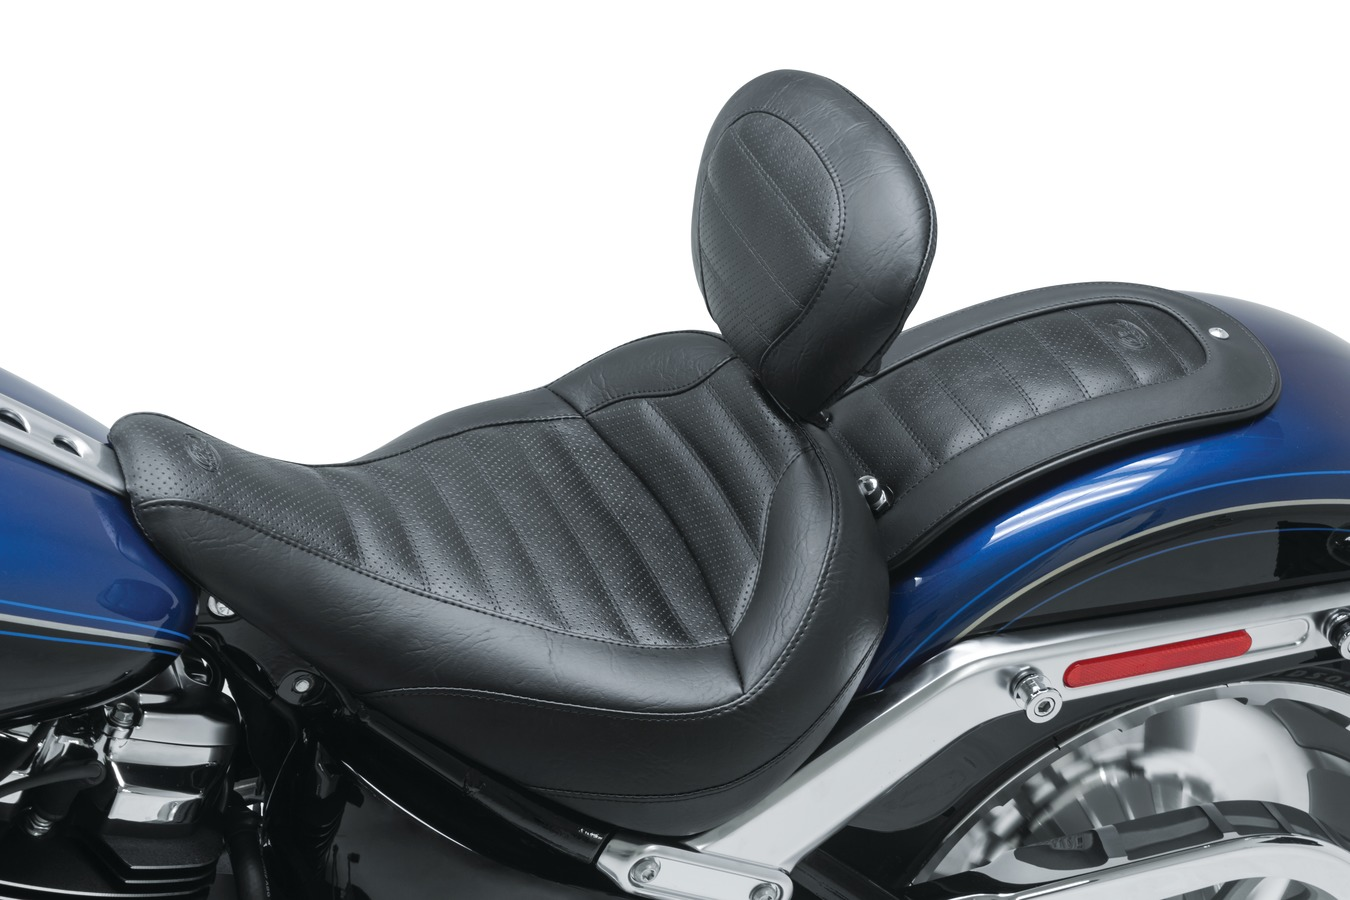 Standard Touring Solo Seat with Driver Backrest, Tuck & Roll,